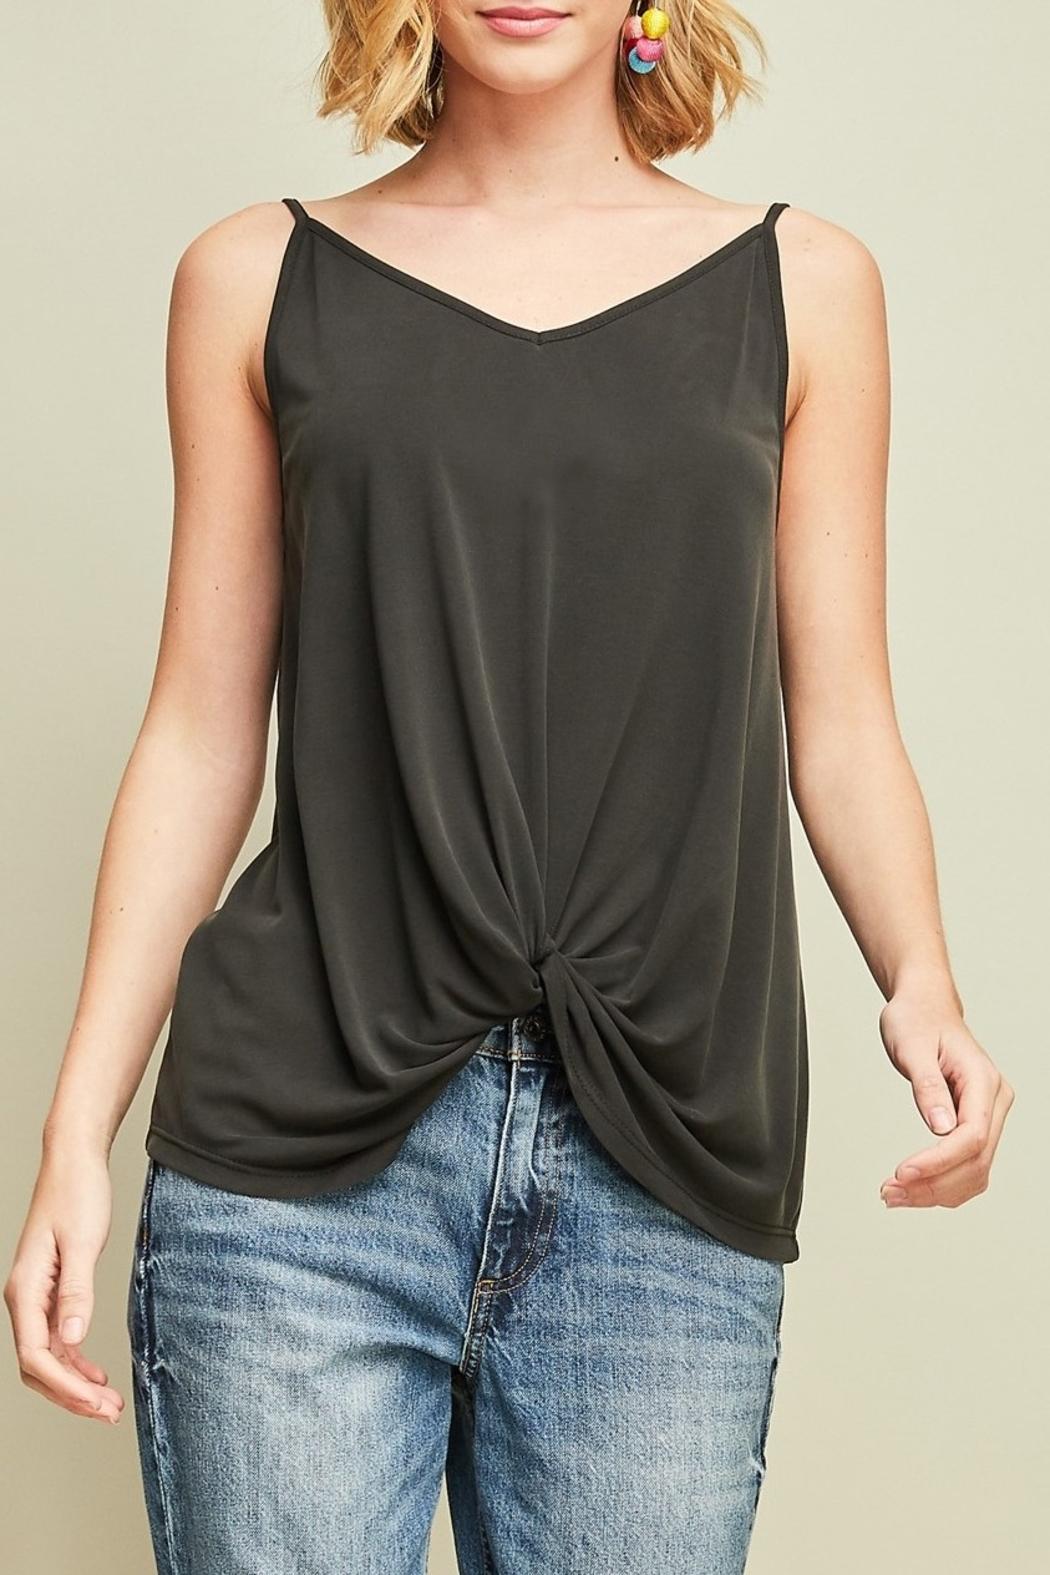 ff03f96d6e7d Entro Twisted Tank Top from Mississippi by Exit 16 - Diamondhead ...